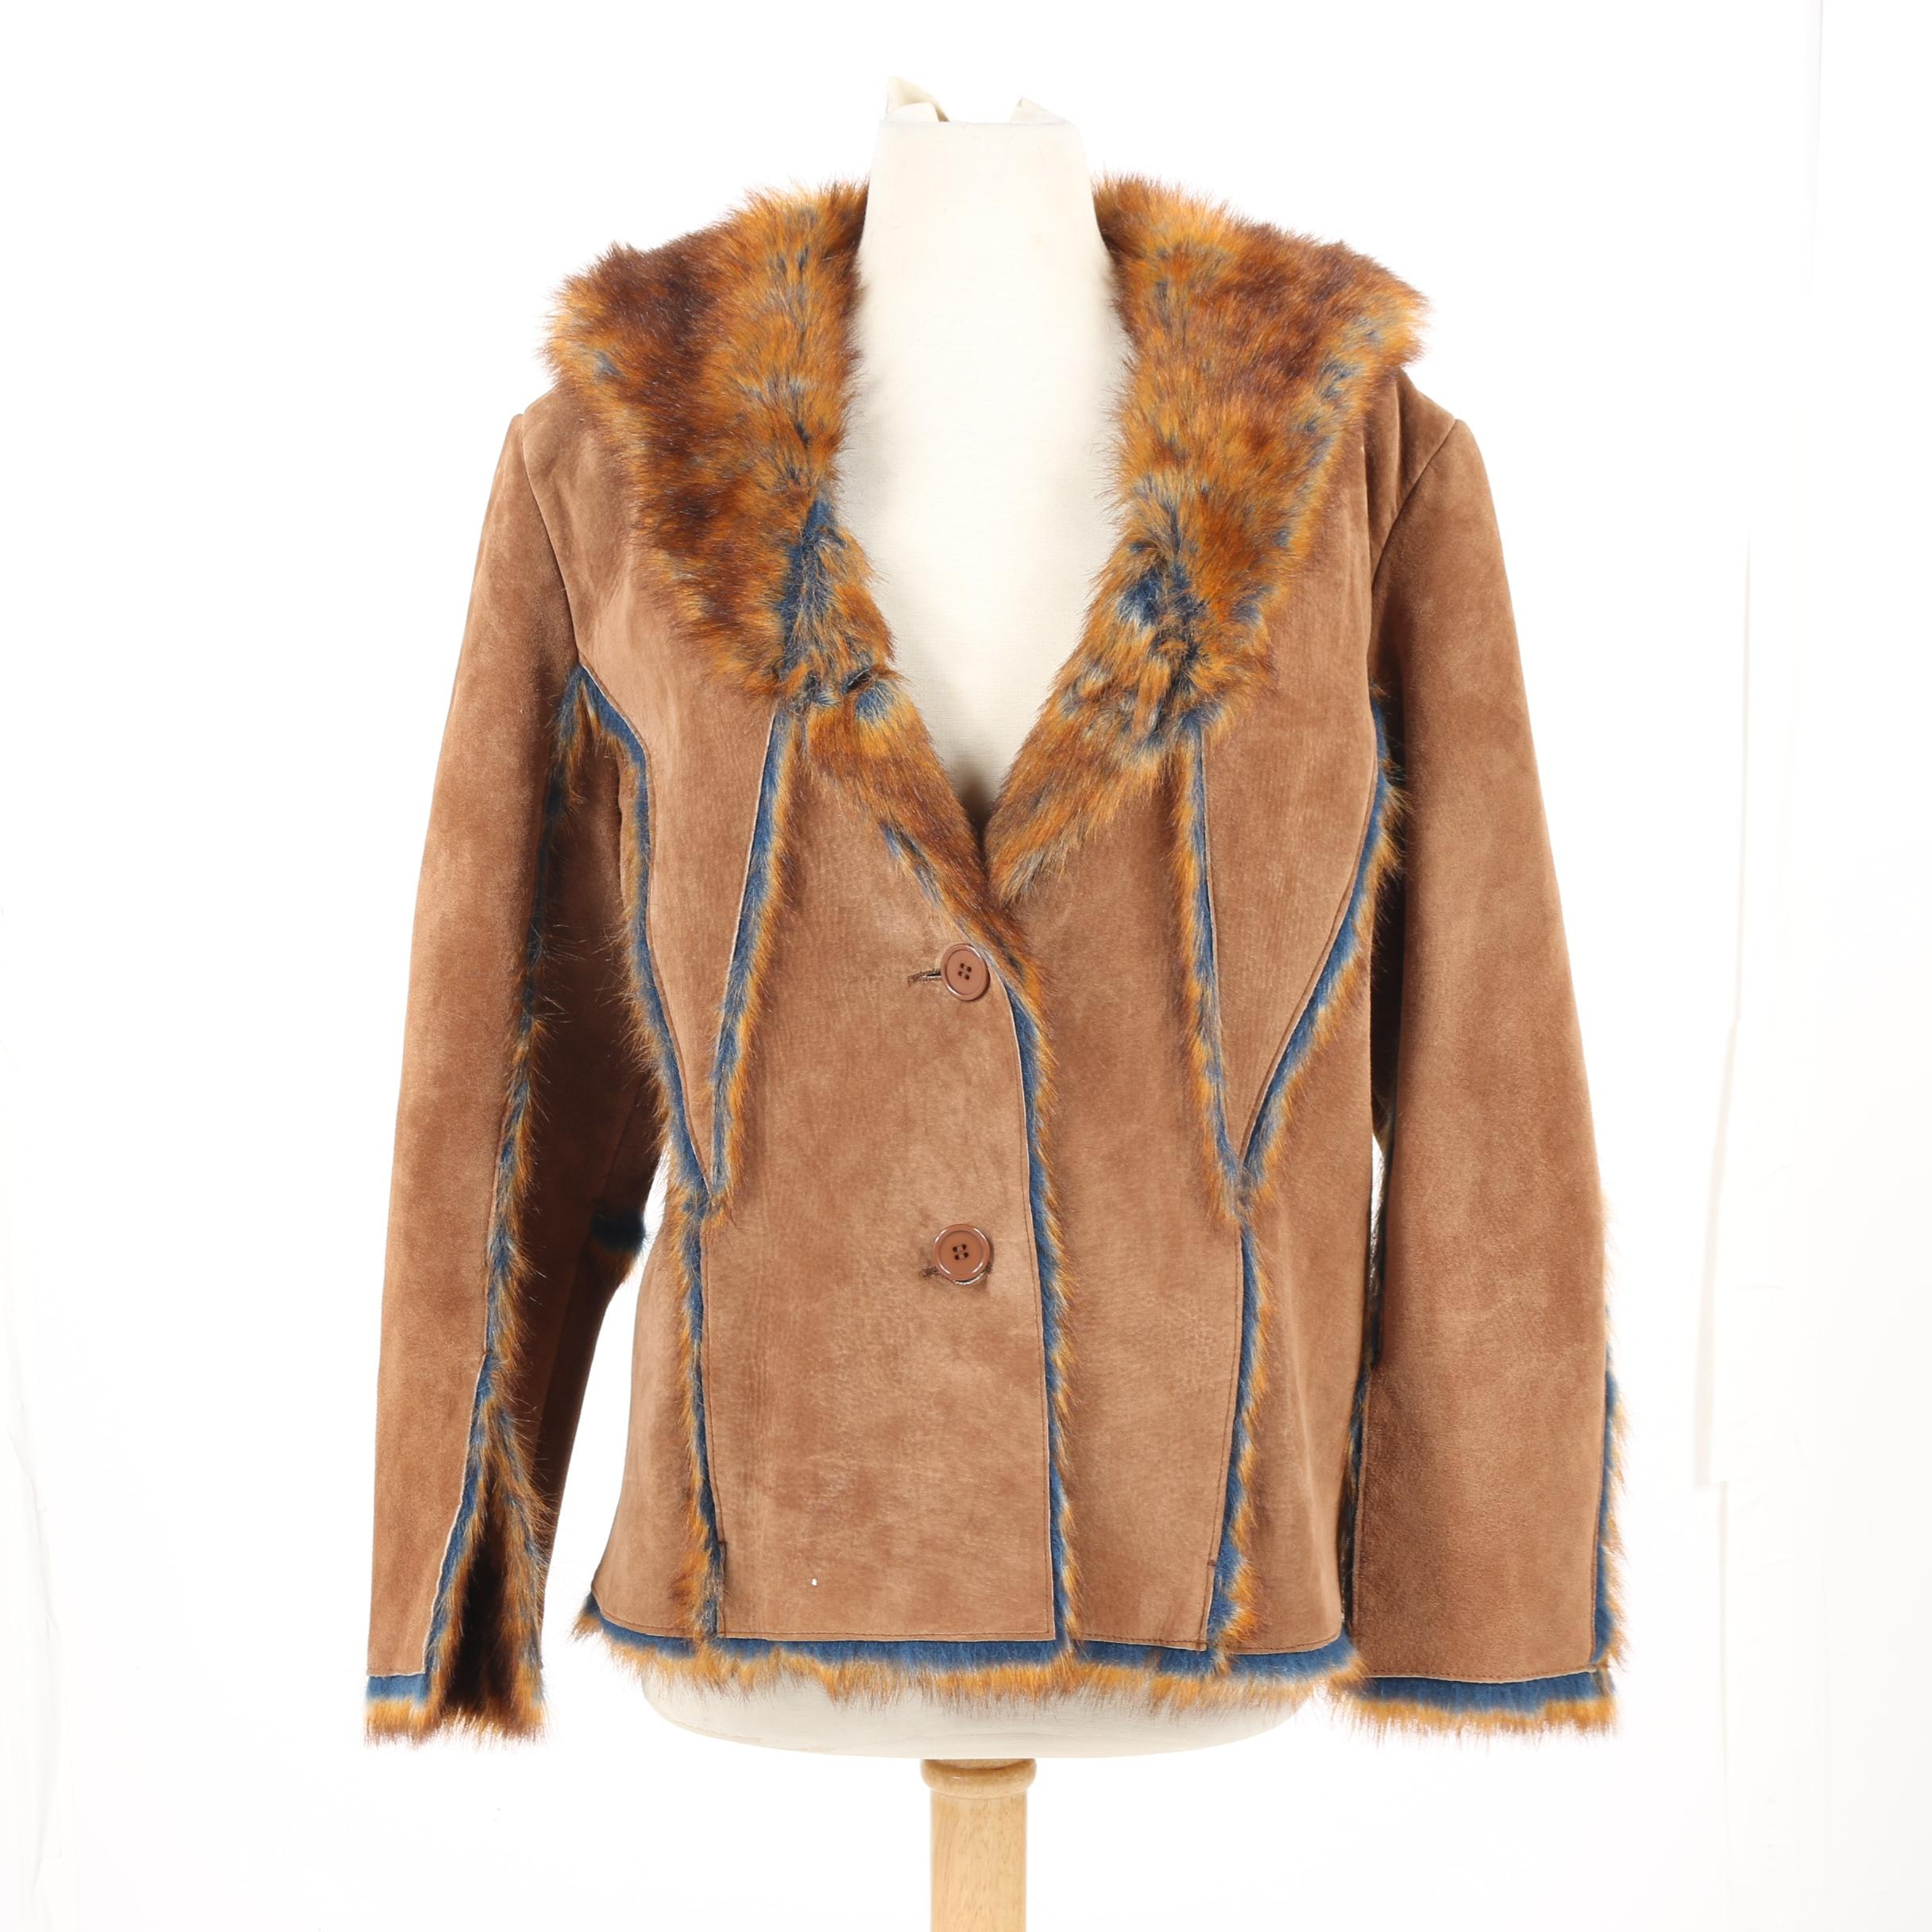 Women's The Look by Randolph Duke Brown Suede Jacket with Faux Fur Lining